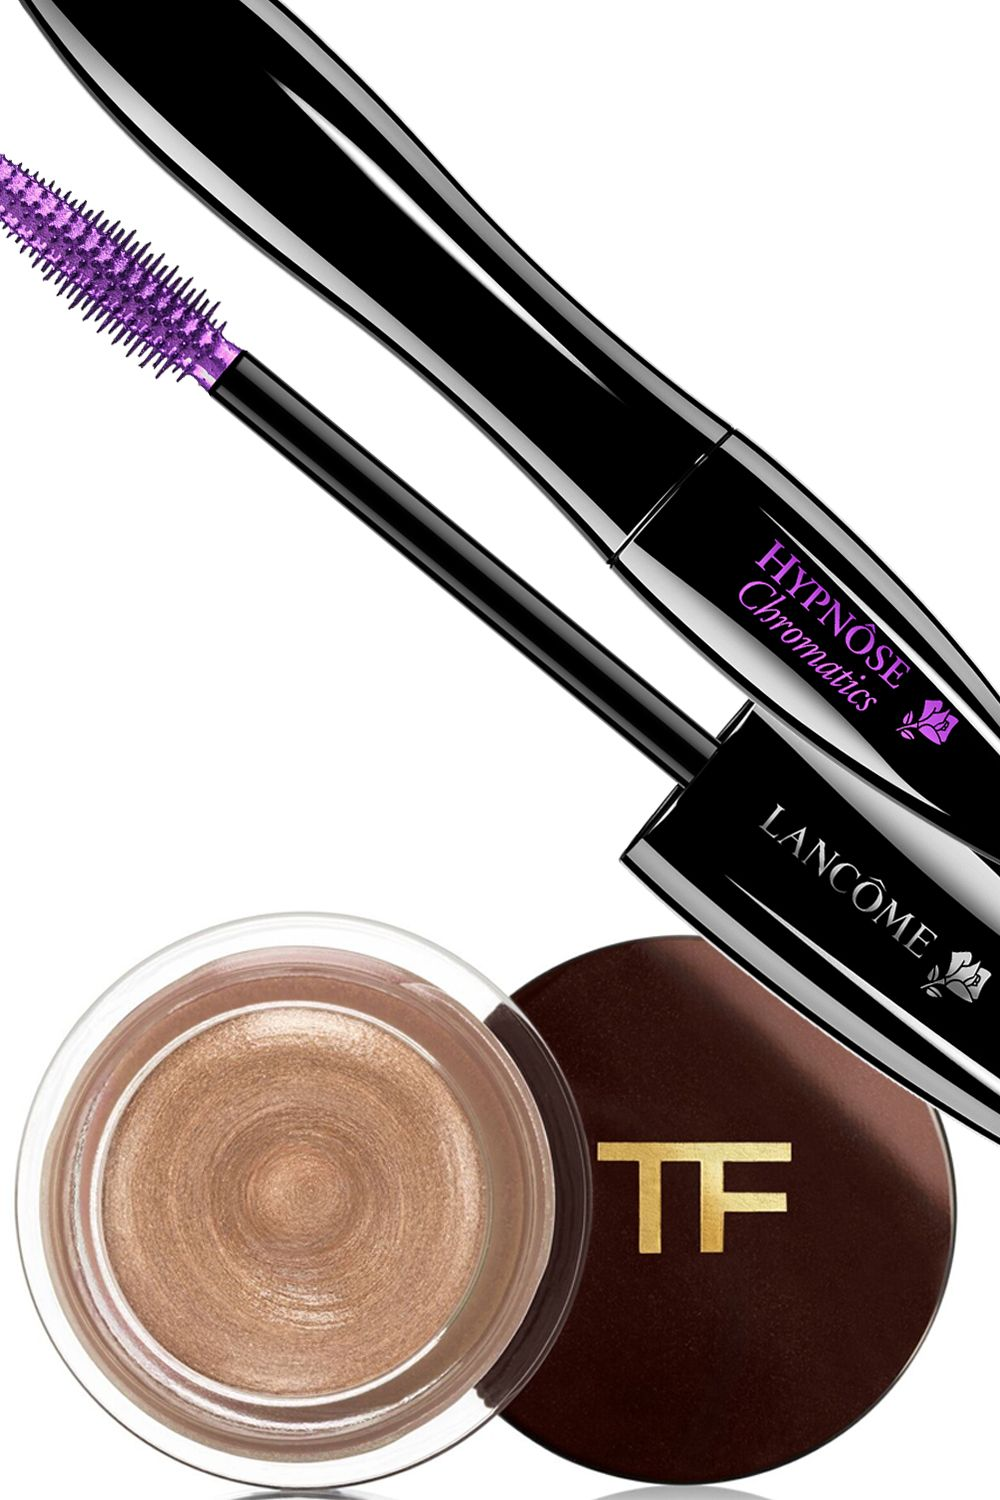 "<p>If your dark brown eyes have even a pinch of a warm, golden undertone, you can count on gold shadow to bring it out and make them sparkle. Purple is your most flattering contrast shade for the lashes; go for ultraviolet to really electrify things, or play it subtle and earthy with a deep eggplant. </p><p><strong>Tom Ford </strong>Crème Color for Eyes in Opale, $45, <a href=""http://www.tomford.com/cream-color-for-eyes/T43R.html?dwvar_T43R_color=OPALE""><u>tomford.com</u></a>; <strong>Lancôme </strong>Hypnôse Chromatics Mascara Top Coat in Amethyste, $28, <a href=""http://www.lancome-usa.com/Hypn%C3%B4se-Chromatics/2000453,default,pd.html?utm_medium=cse_feed&utm_campaign=Makeup_Shop_by_Collection_NEW!_-_Parisian_Pop_Collection&utm_source=google&utm_content=Hypn%C3%B4se_Chromatics&cm_mmc=cse_feed-_-Makeup_Shop_by_Collection_NEW!_-_Parisian_Pop_Collection-_-google-_-Hypn%C3%B4se_Chromatics&LGWCODE=2000453;106713;6271&gclid=CjwKEAiA04S3BRCYteOr6b-roSUSJABE1-6BENXjKxSsKOAs3MvKTmnyaxF-mUzU-N9rOftcltjgkRoC5T_w_wcB"" target=""_blank"">lancome-usa.com</a>. <span class=""redactor-invisible-space""></span></p>"